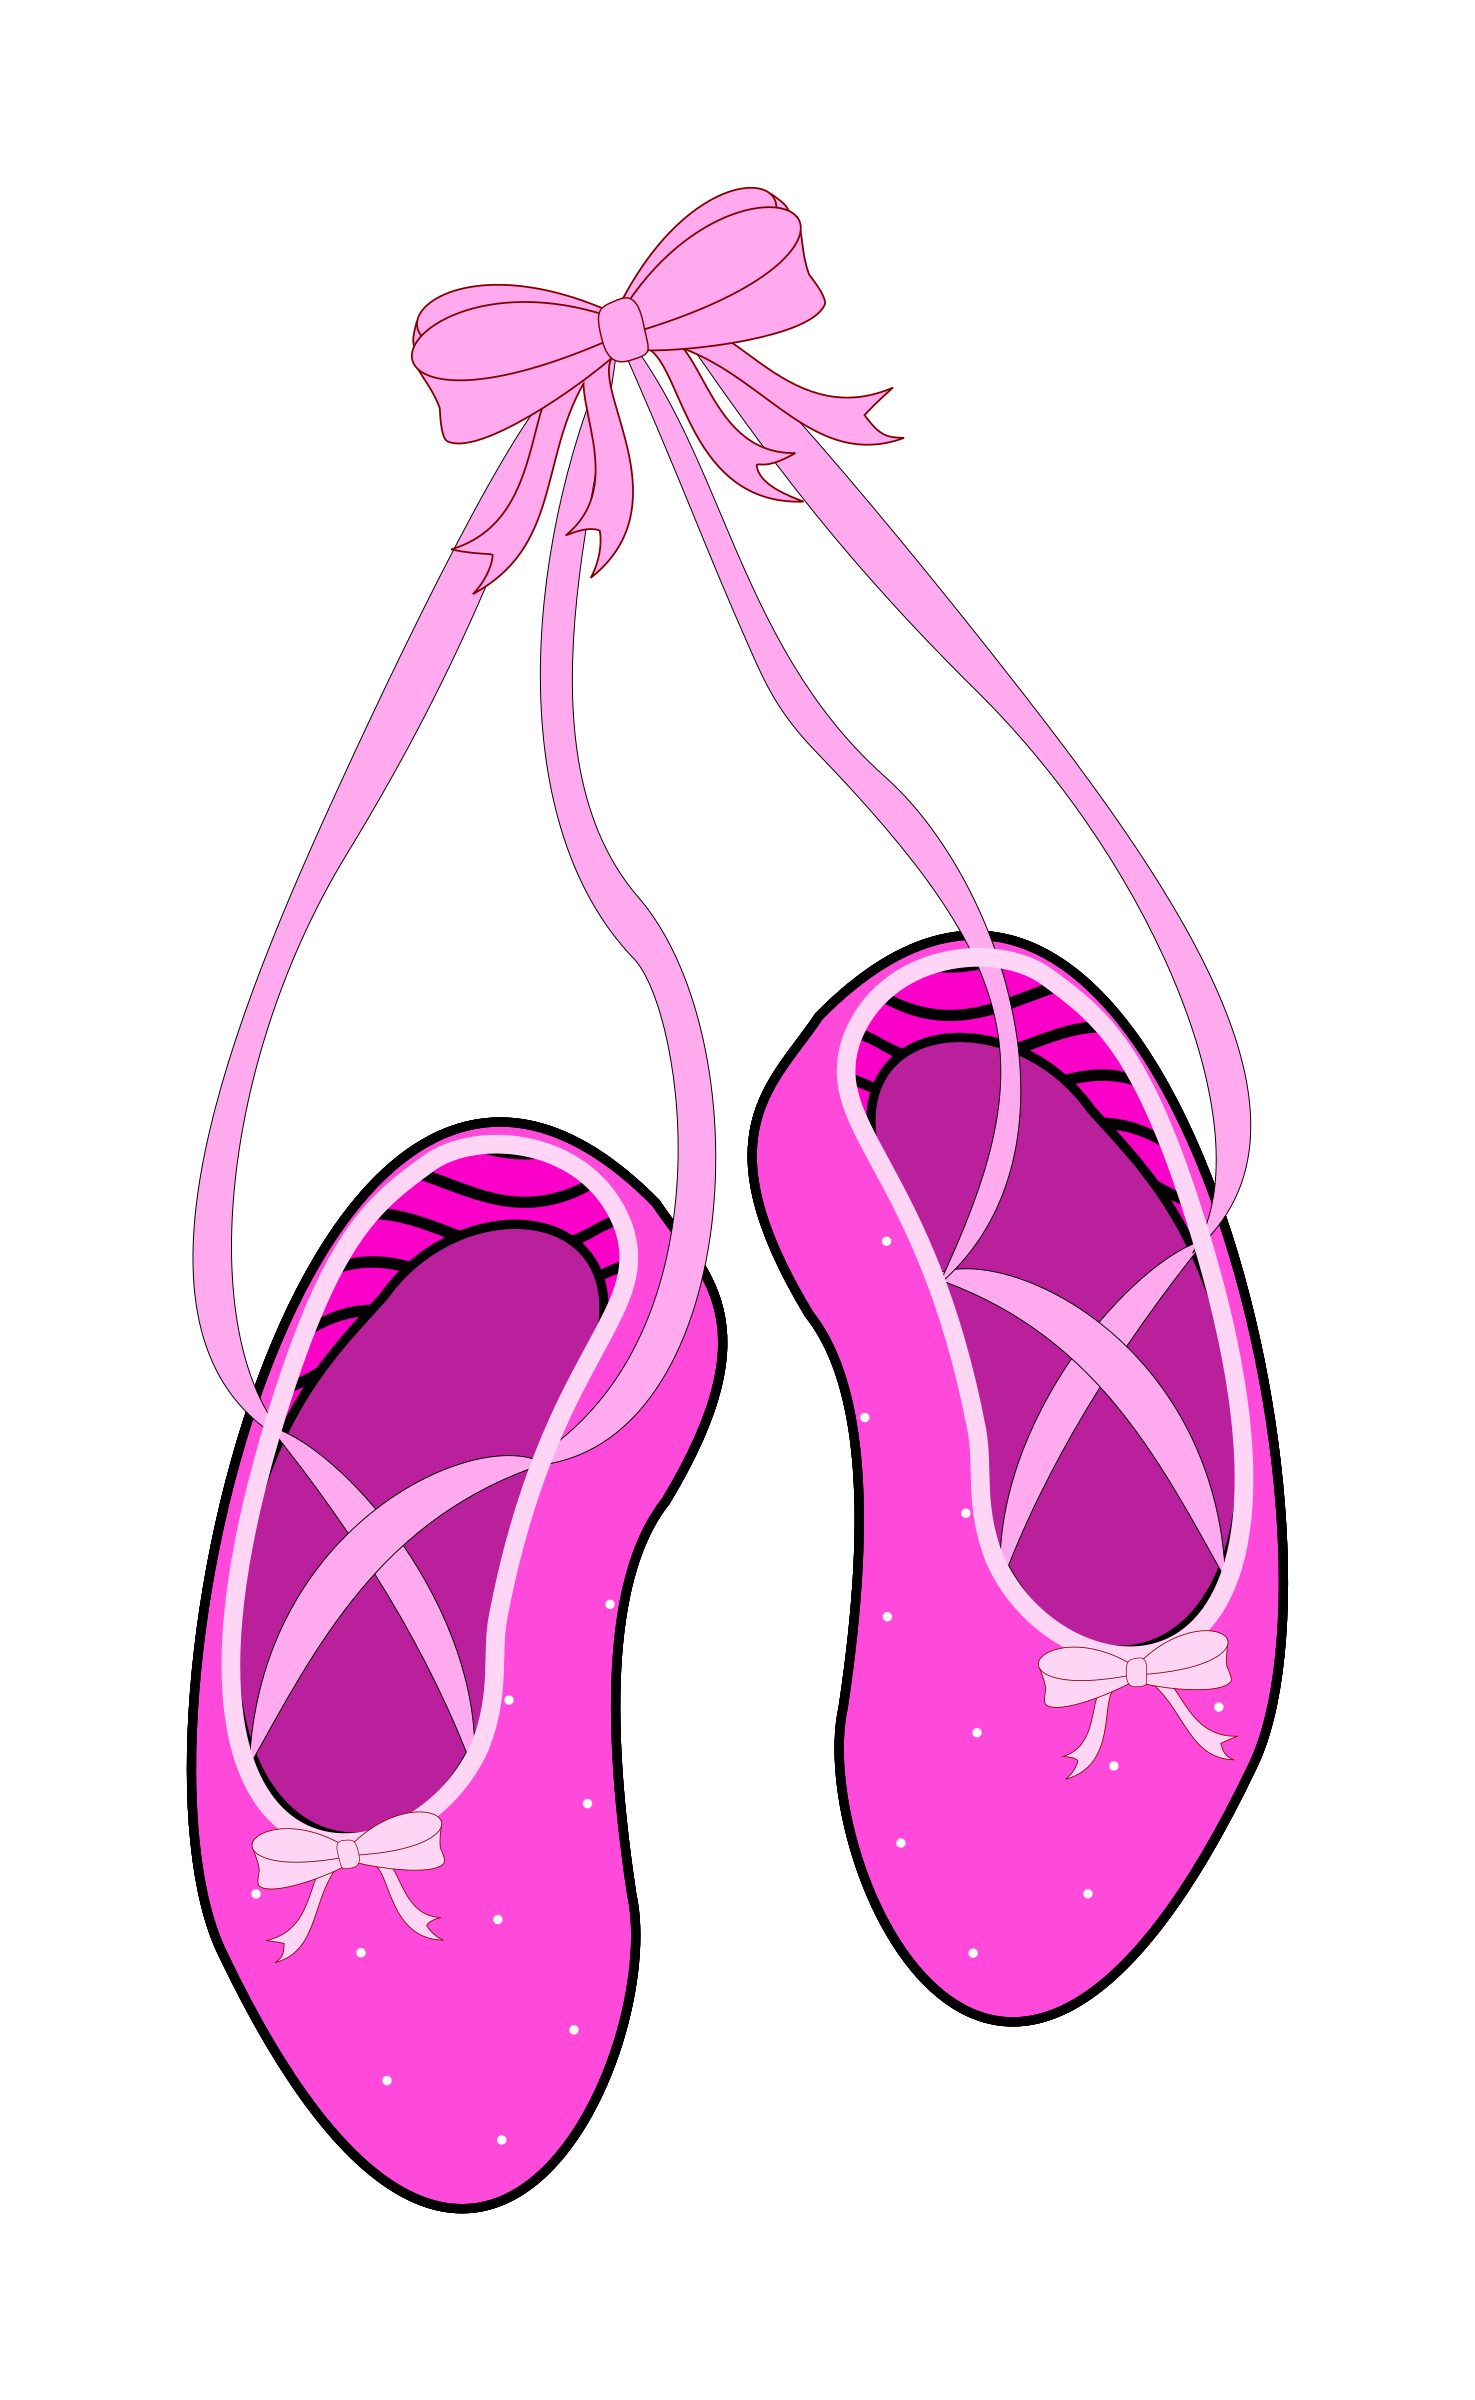 clipart ballet slippers rh openclipart org ballet shoes clipart png red ballet shoes clipart